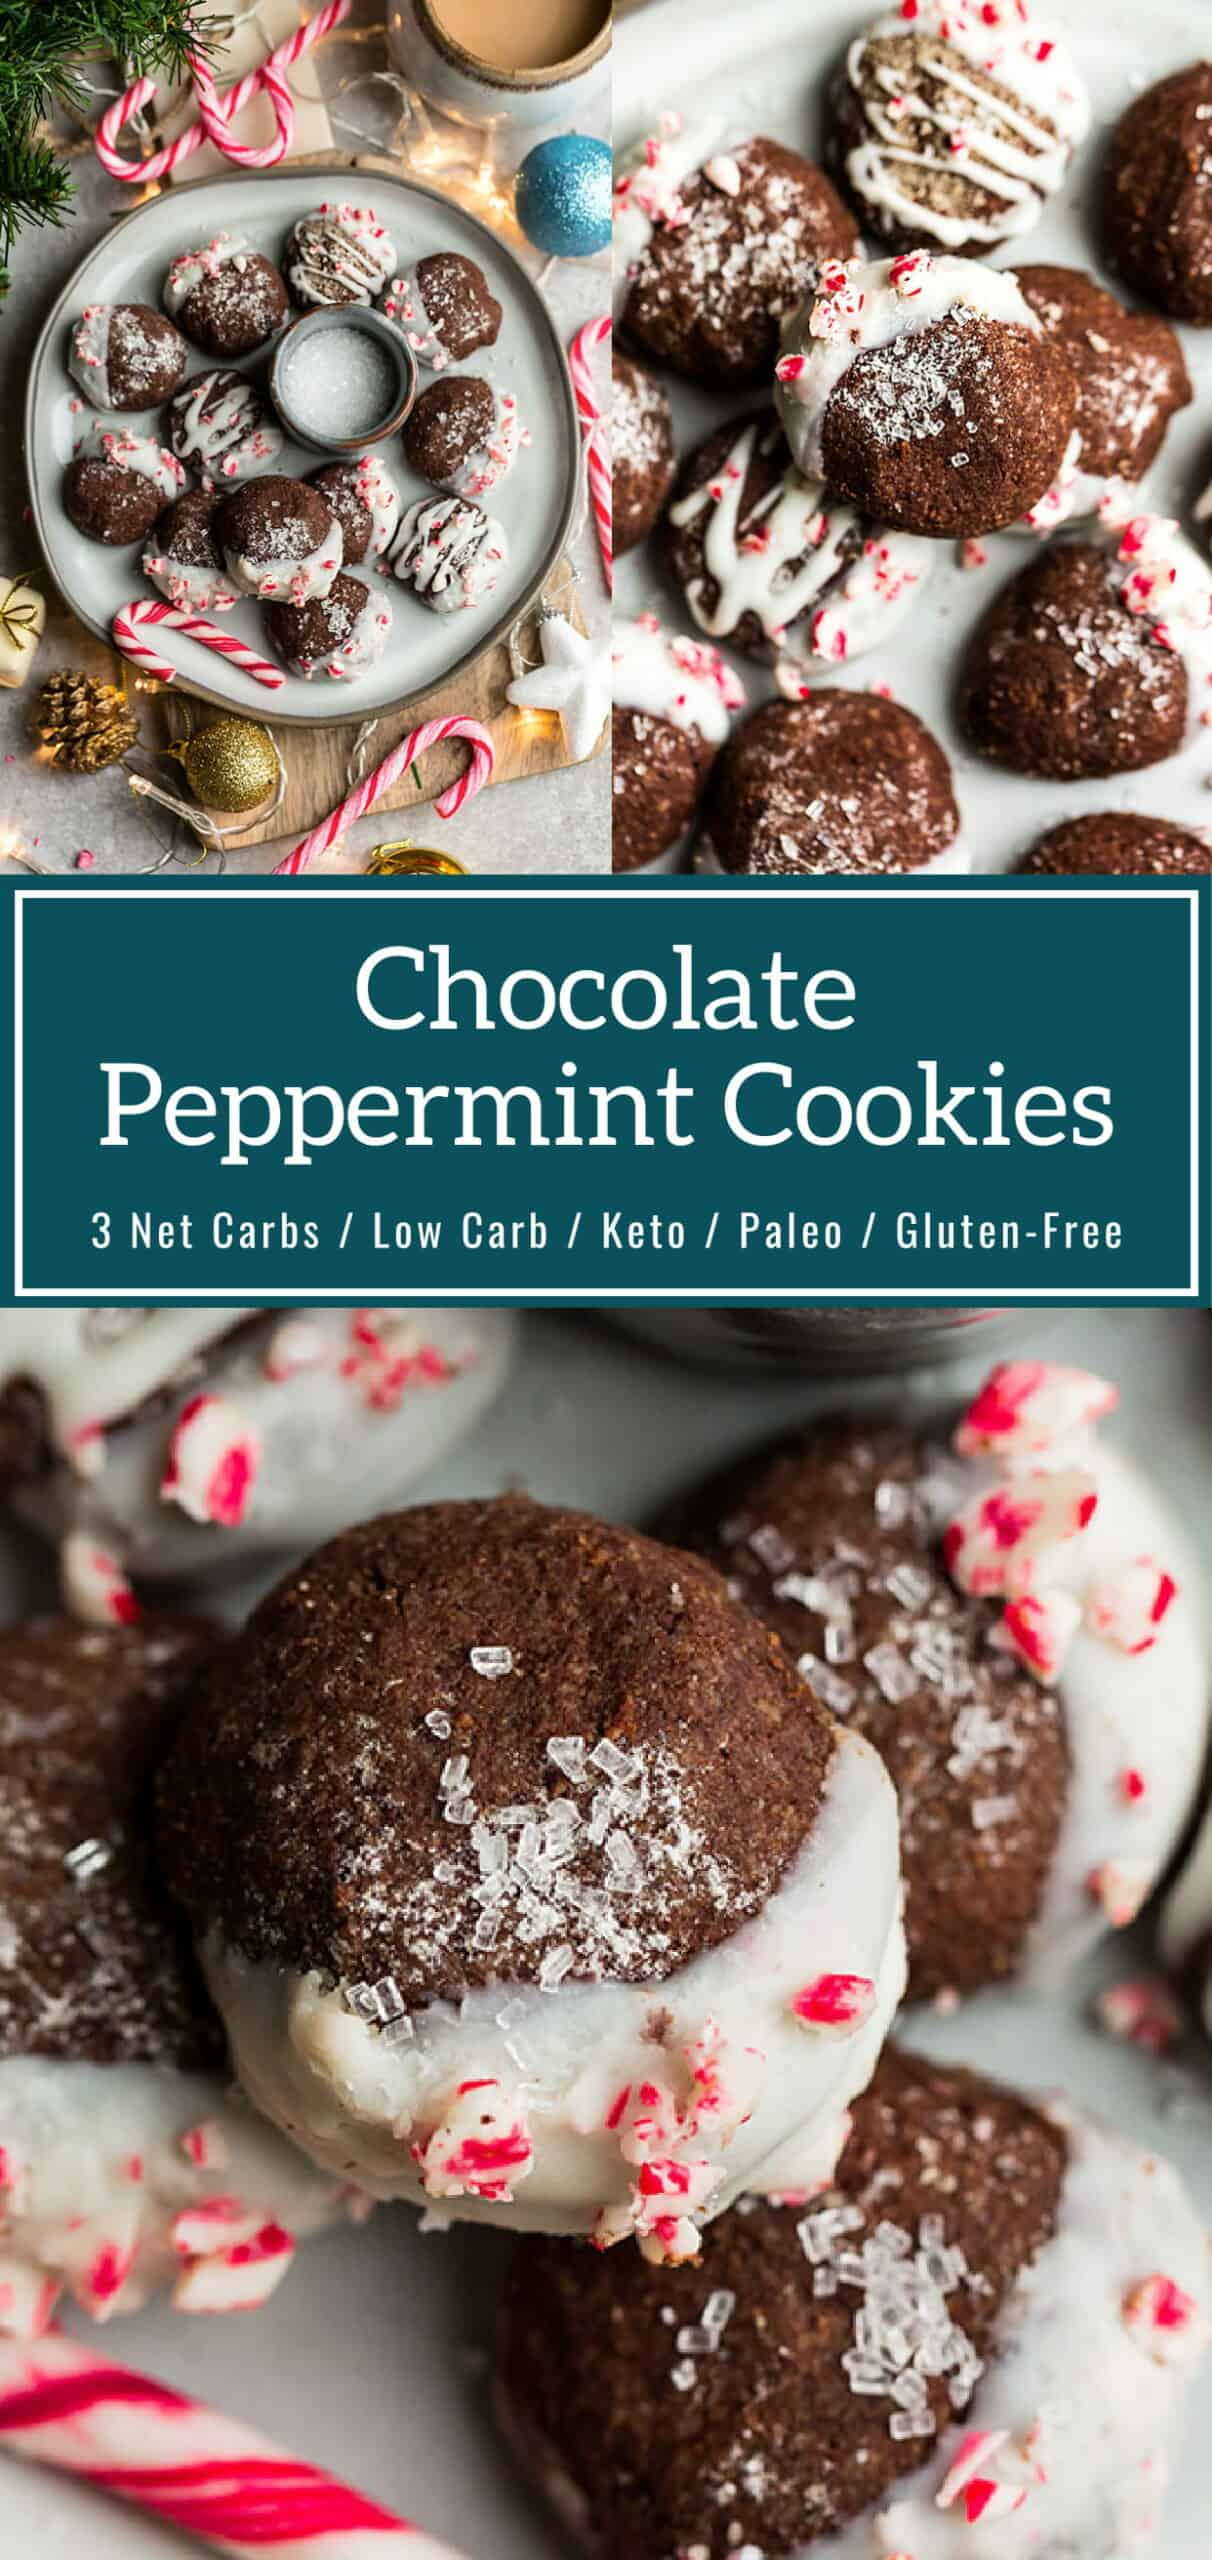 Low Carb Chocolate Peppermint Cookies